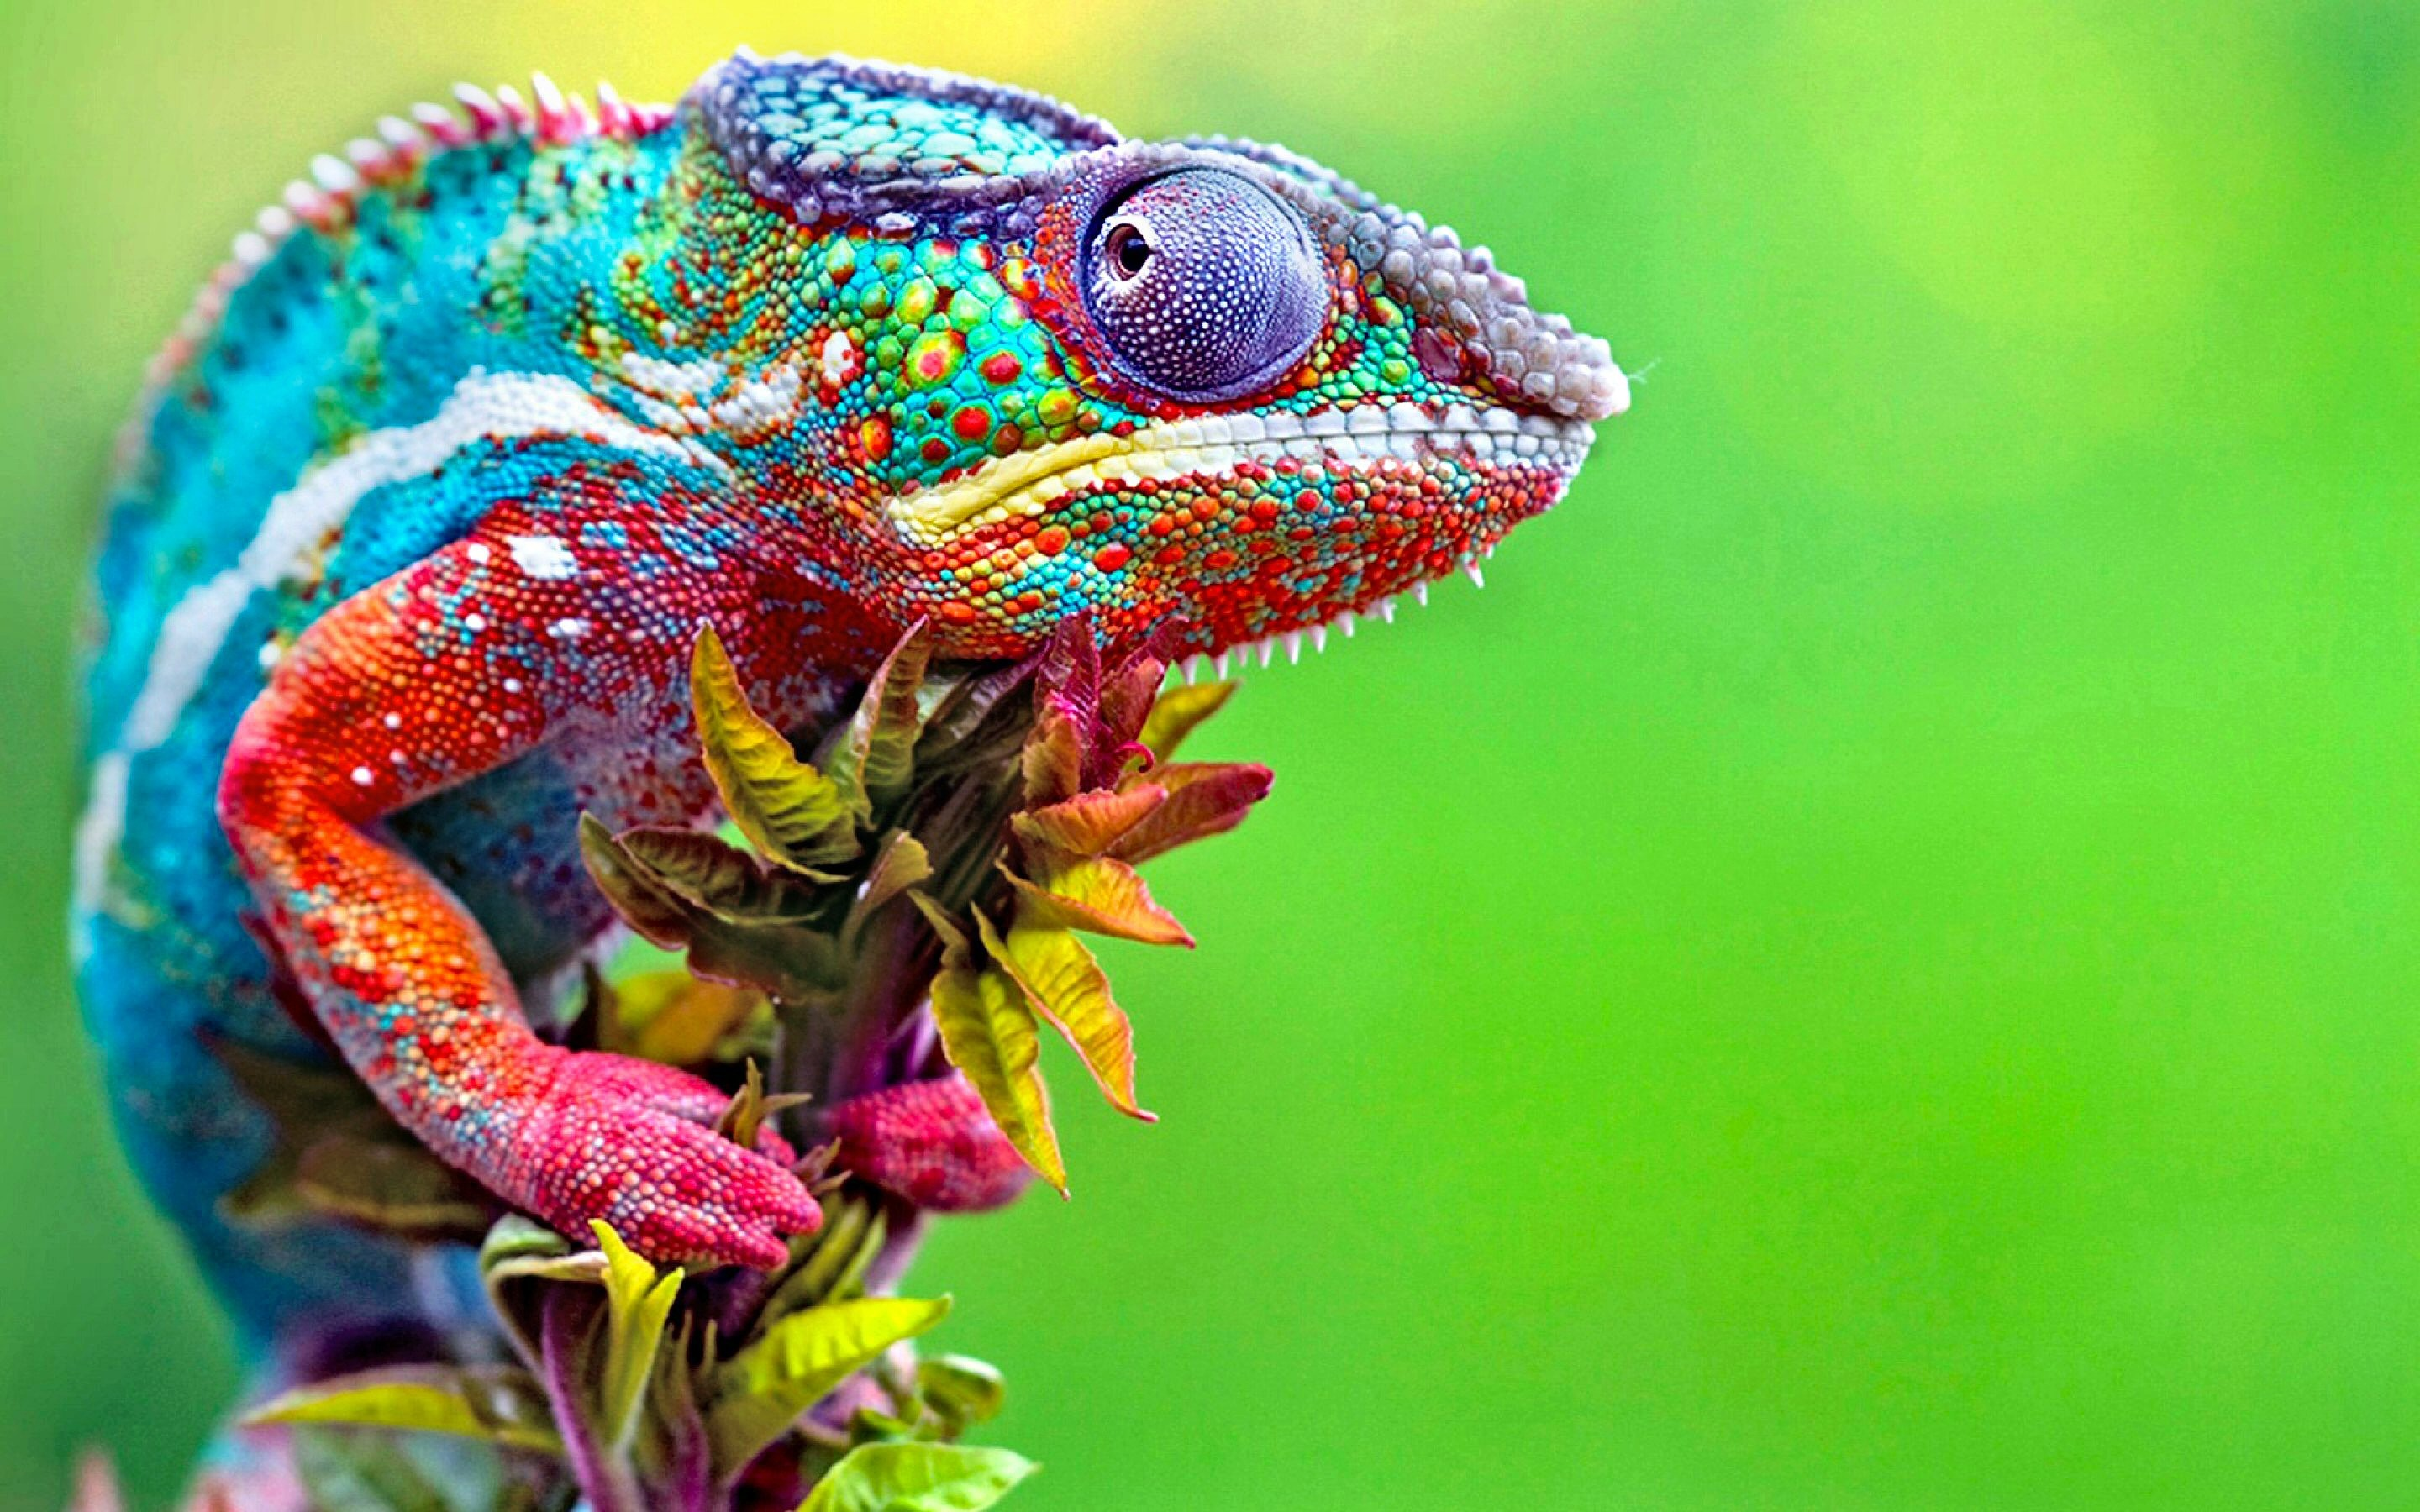 Animal wallpaper            Download free awesome High Resolution     animal wallpaper 1920x1080 for xiaomi